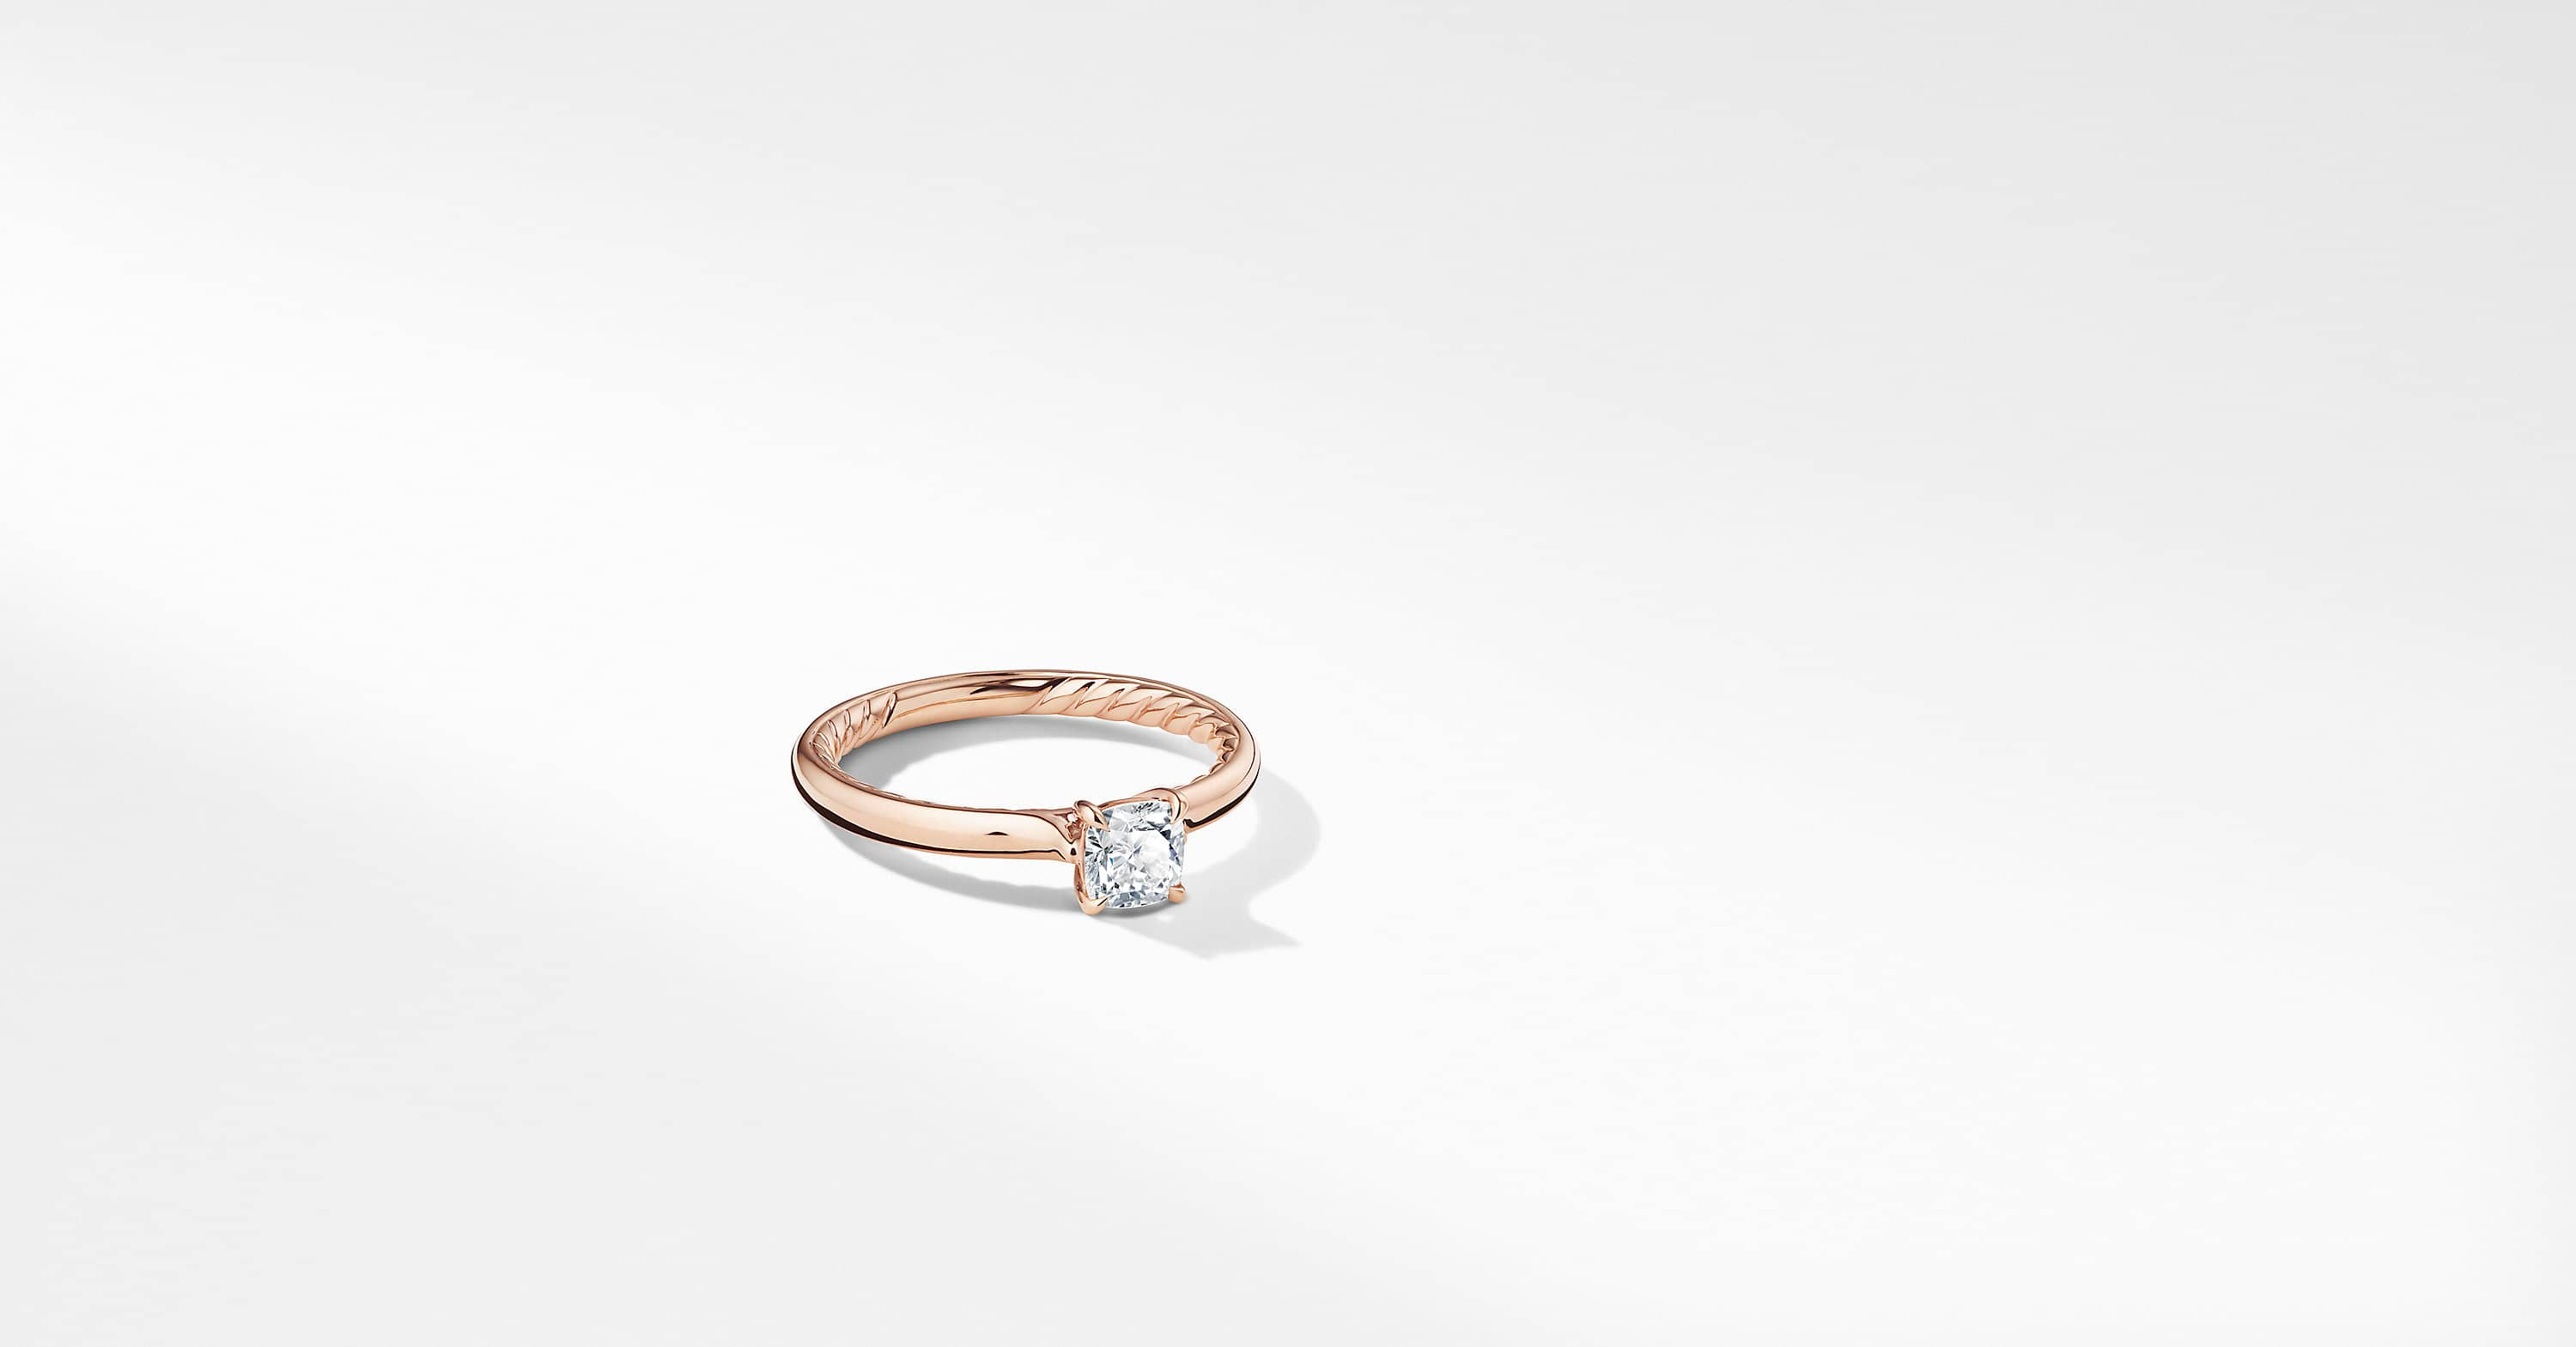 DY Eden Petite Engagement Ring in 18K Rose Gold, Cushion